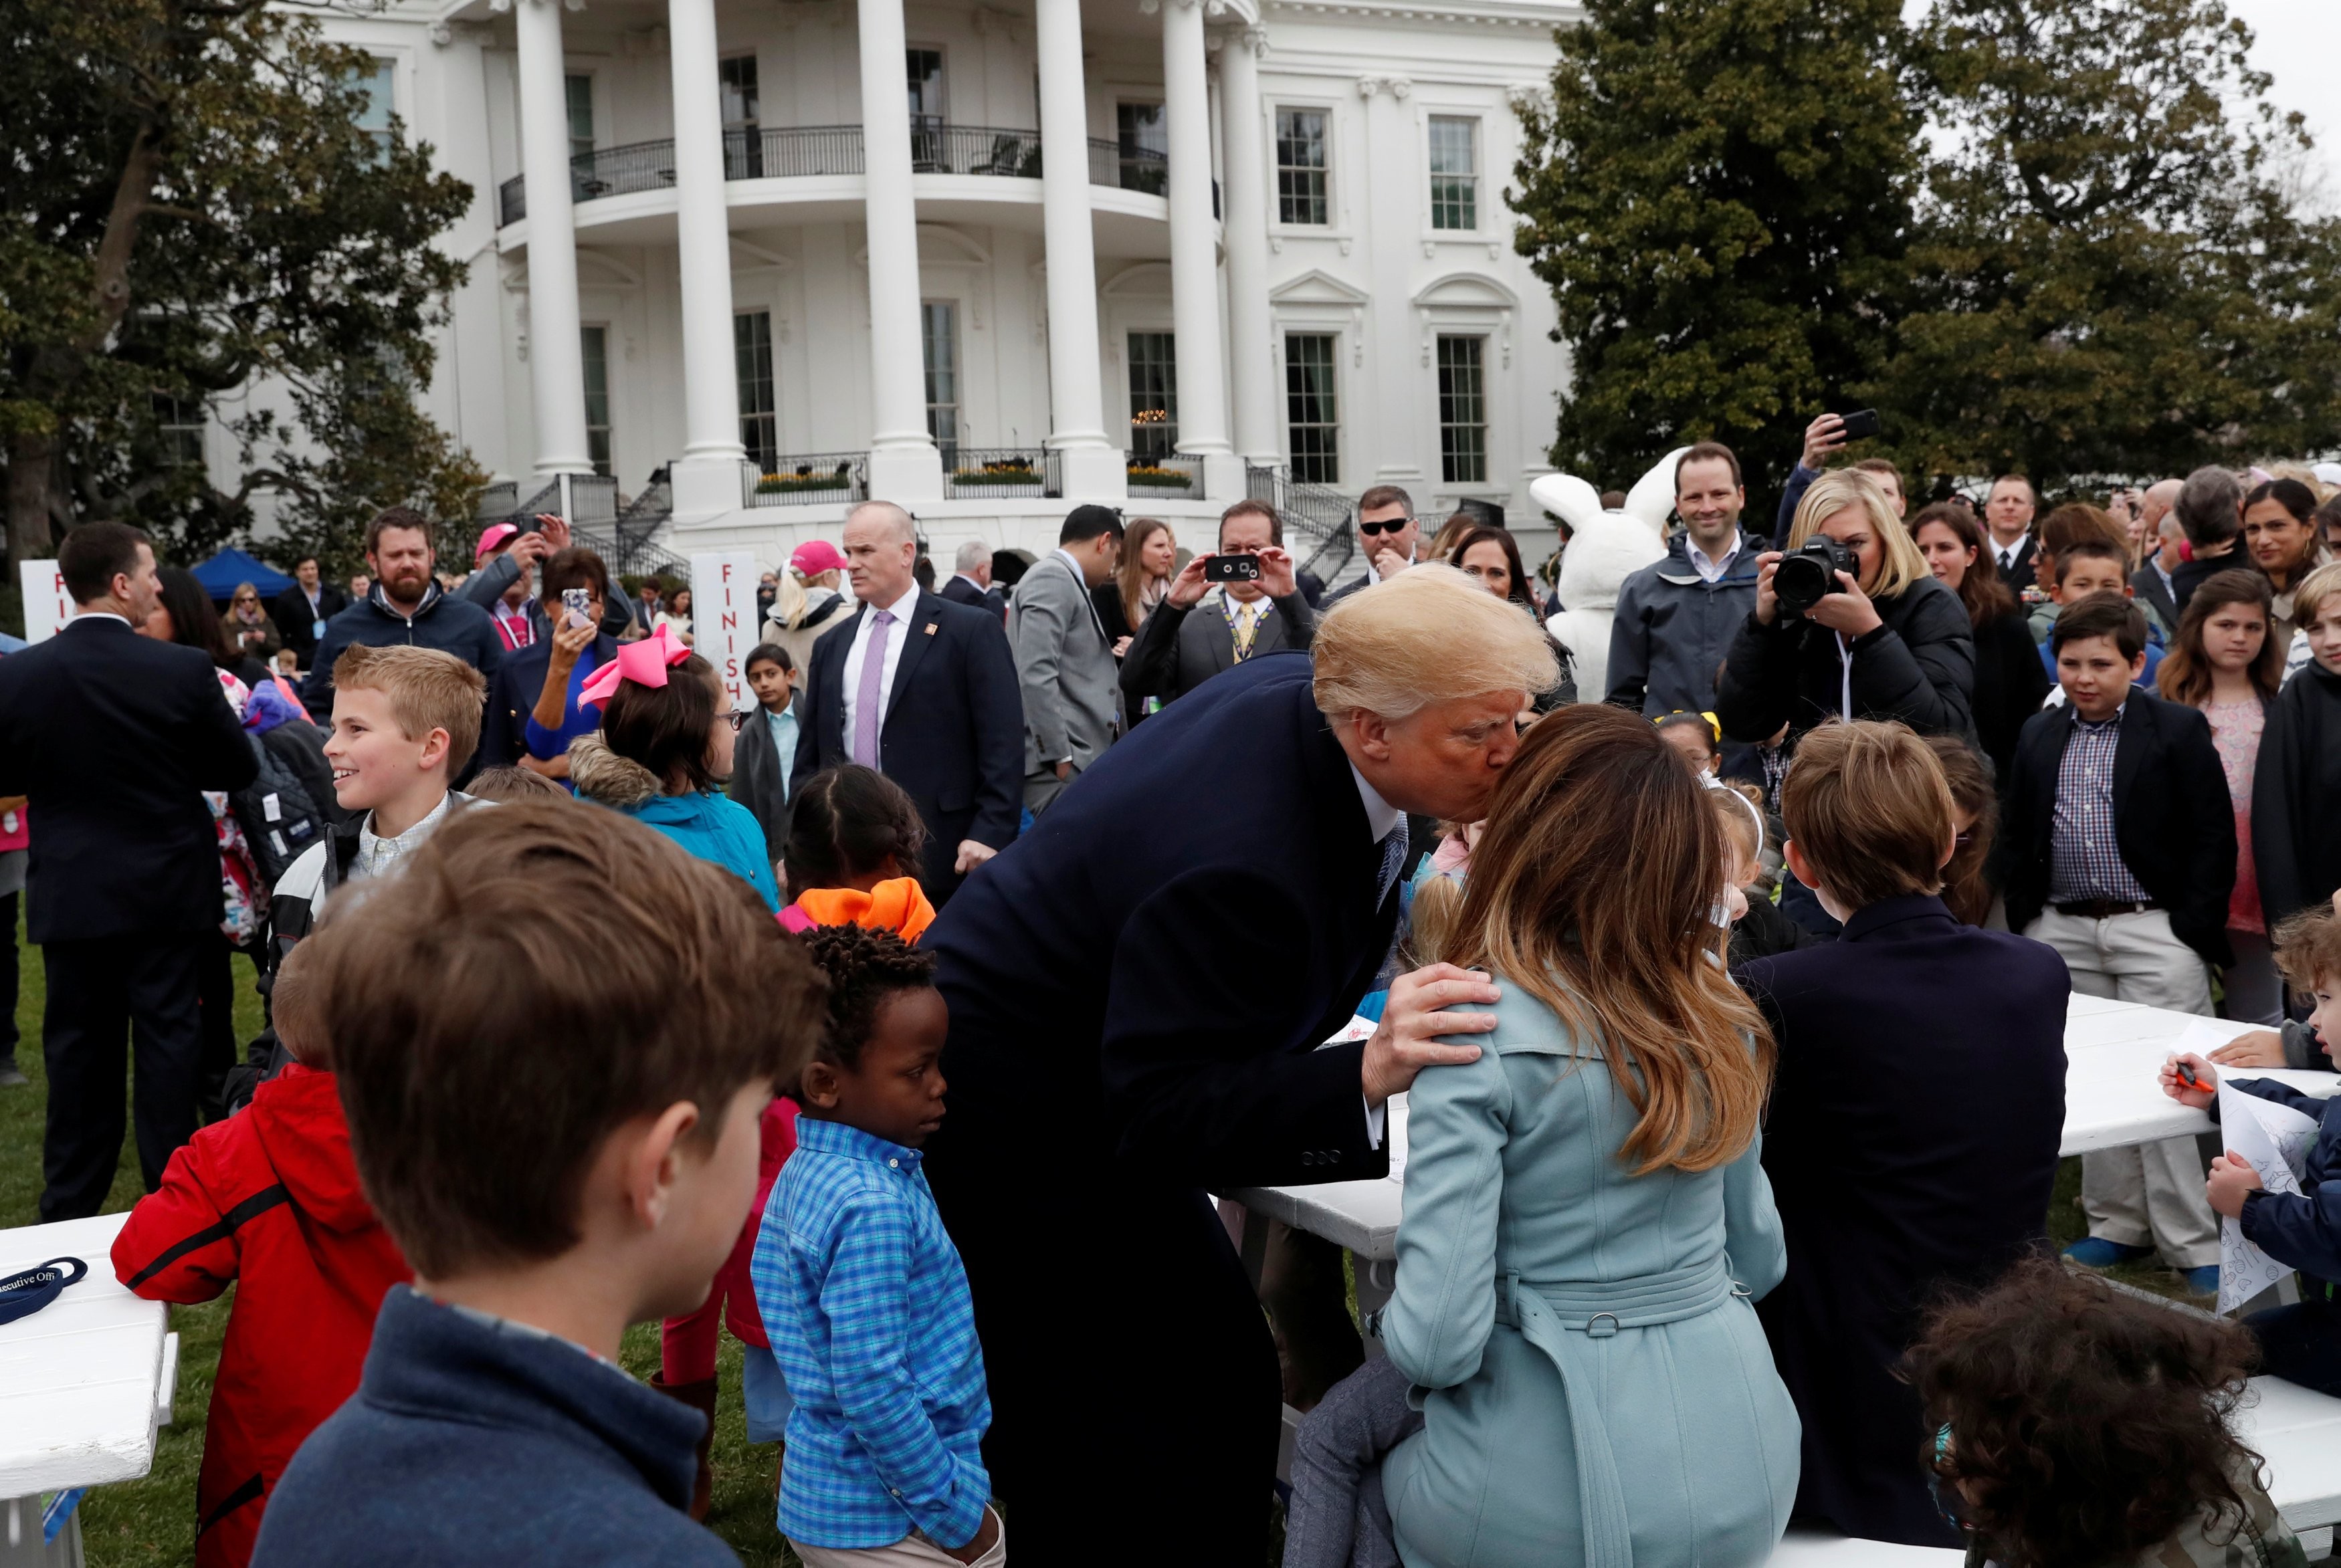 U.S. President Donald Trump gives first lady Melania Trump a kiss on the cheek during the annual White House Easter Egg Roll on the South Lawn of the White House in Washington